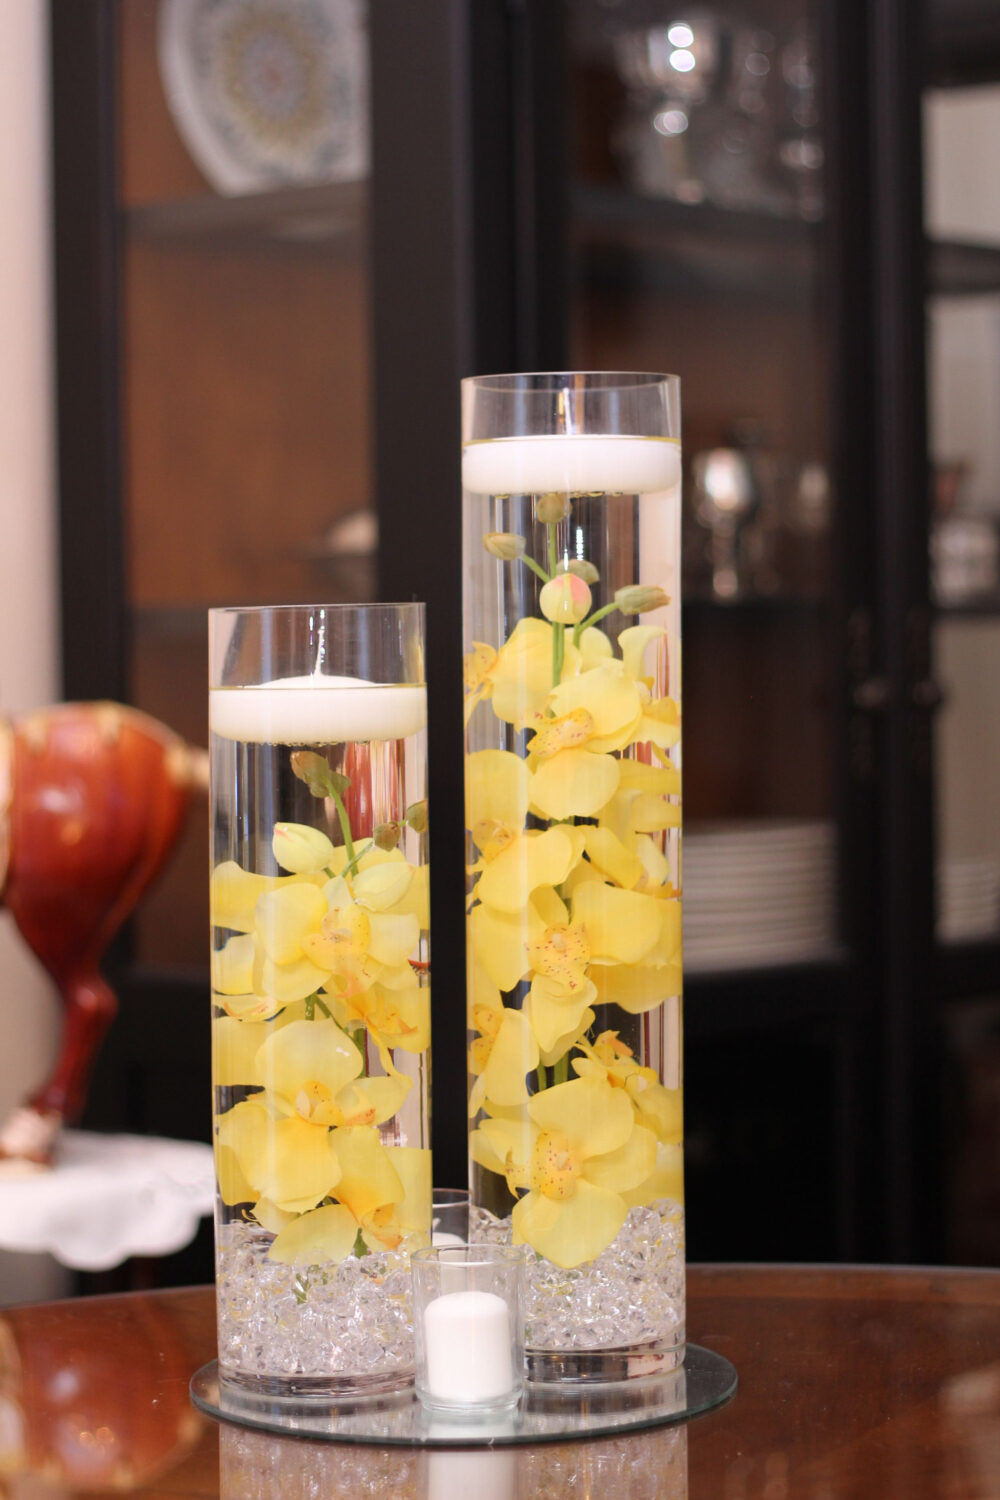 Floral Floating Candle Cylinder Vase Set with Mirrorm-Orchids-Yellow, White, Red-Sweet 16-Wedding-Shower-Party-Birthday-Flowers